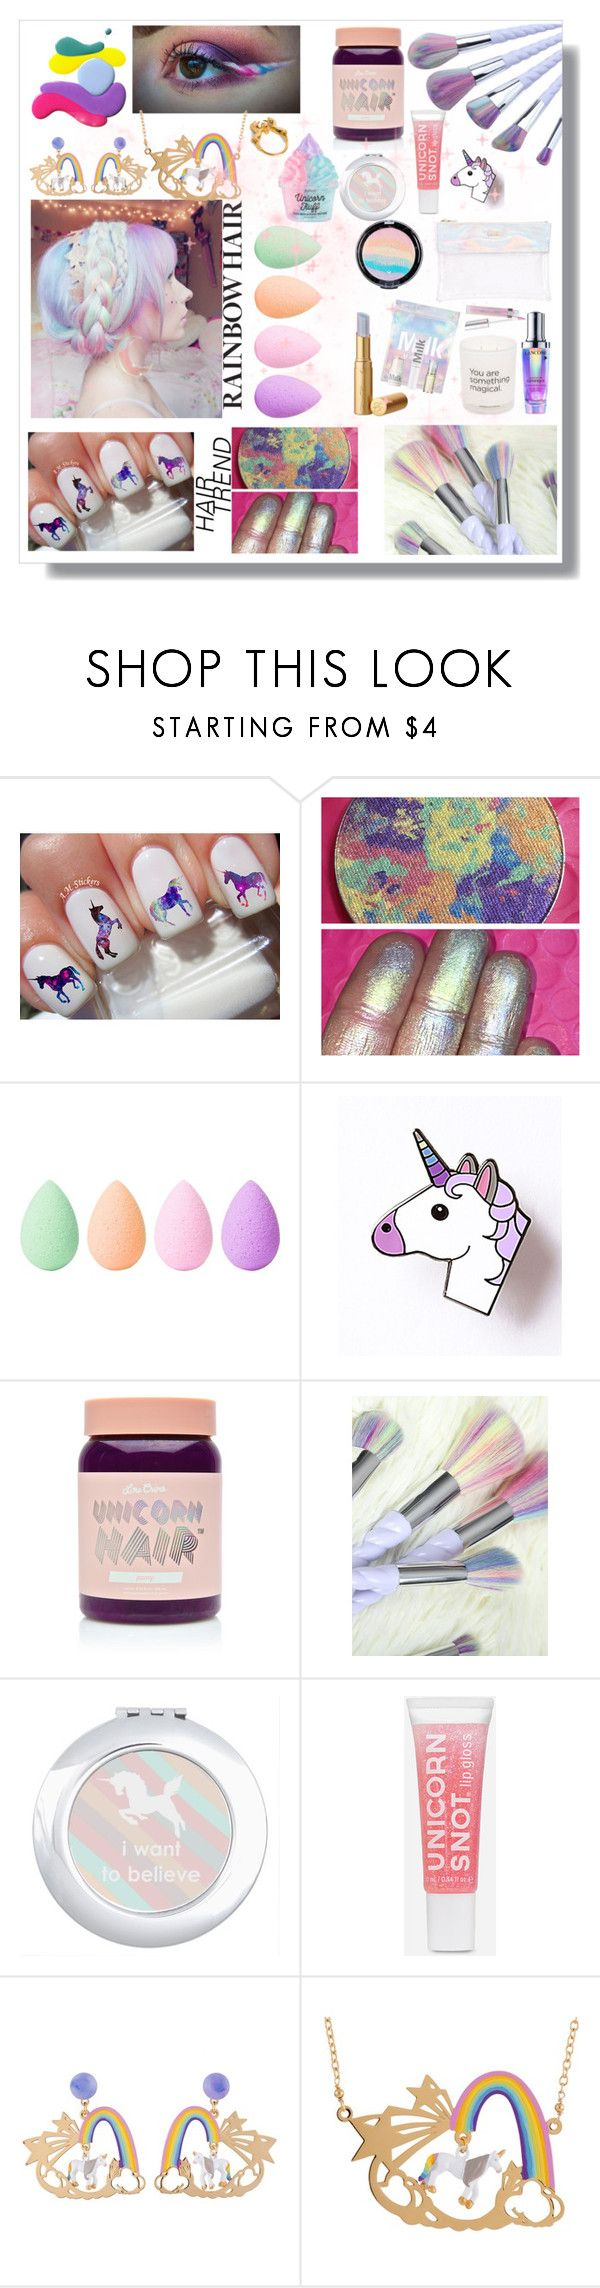 """Unicorn Makeup & Rainbow Hair"" by maloley-johnson ❤ liked on Polyvore featuring beauty, beautyblender, Lime Crime, Les Néréides and Me & Zena"